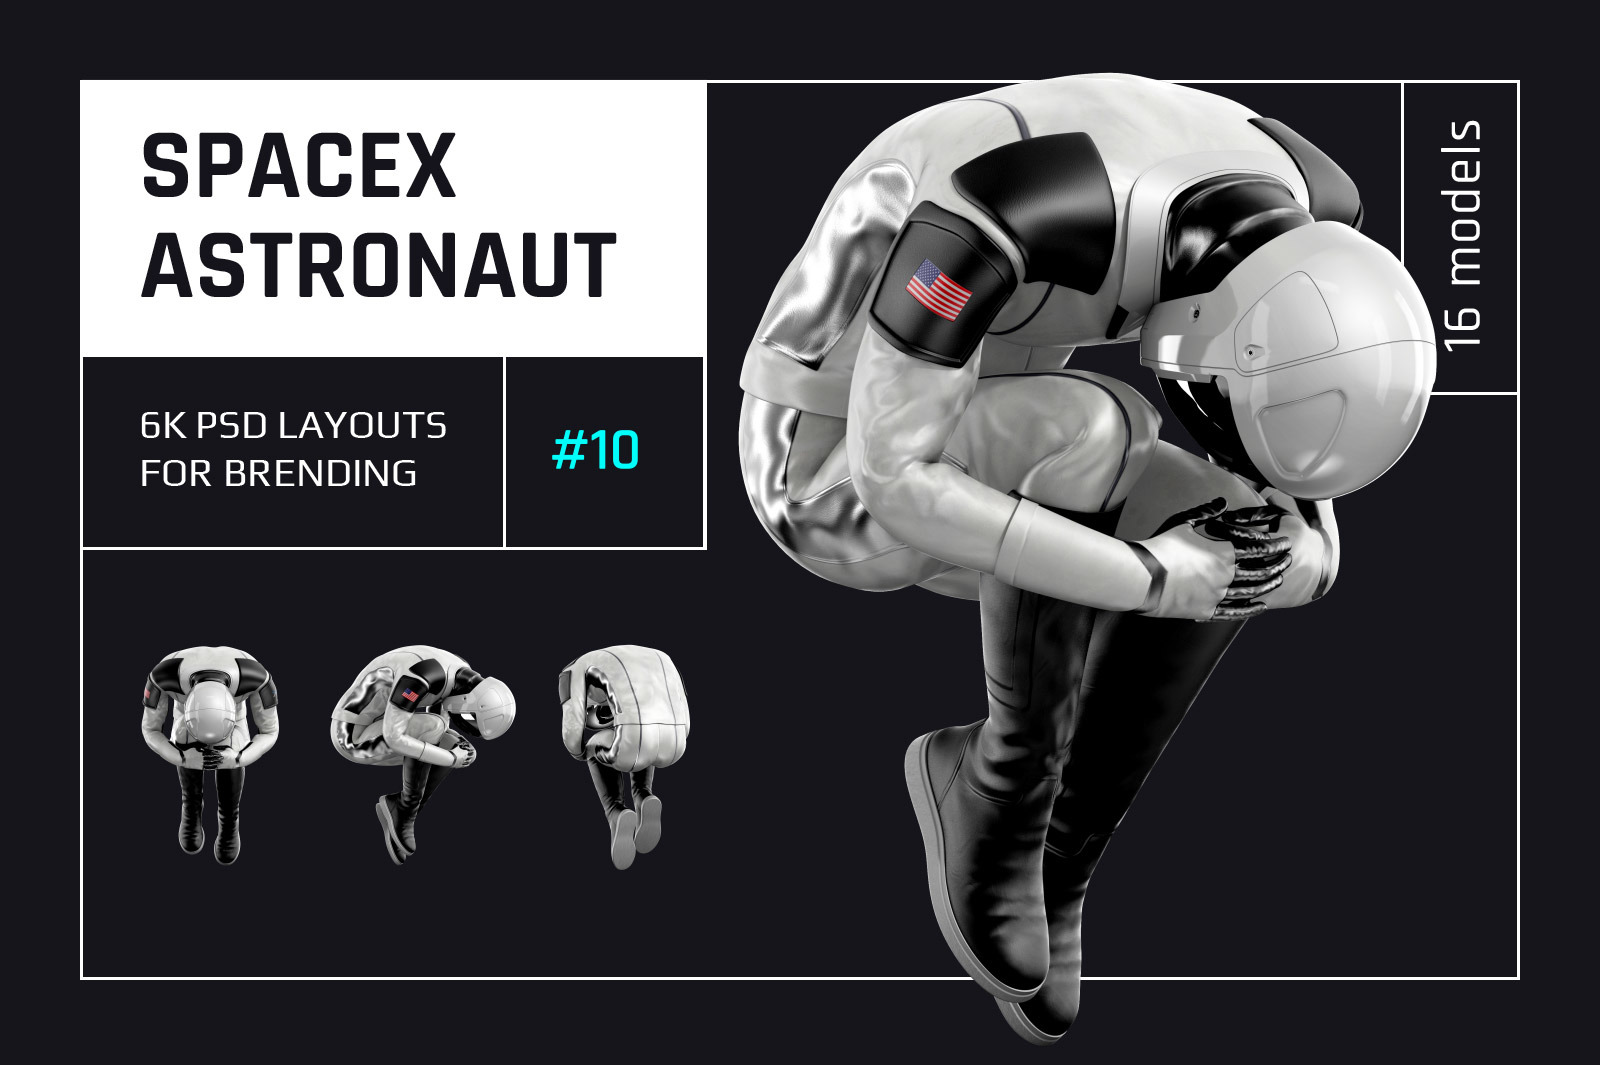 PSD Mockup 3D model SpaceX Astronaut #10